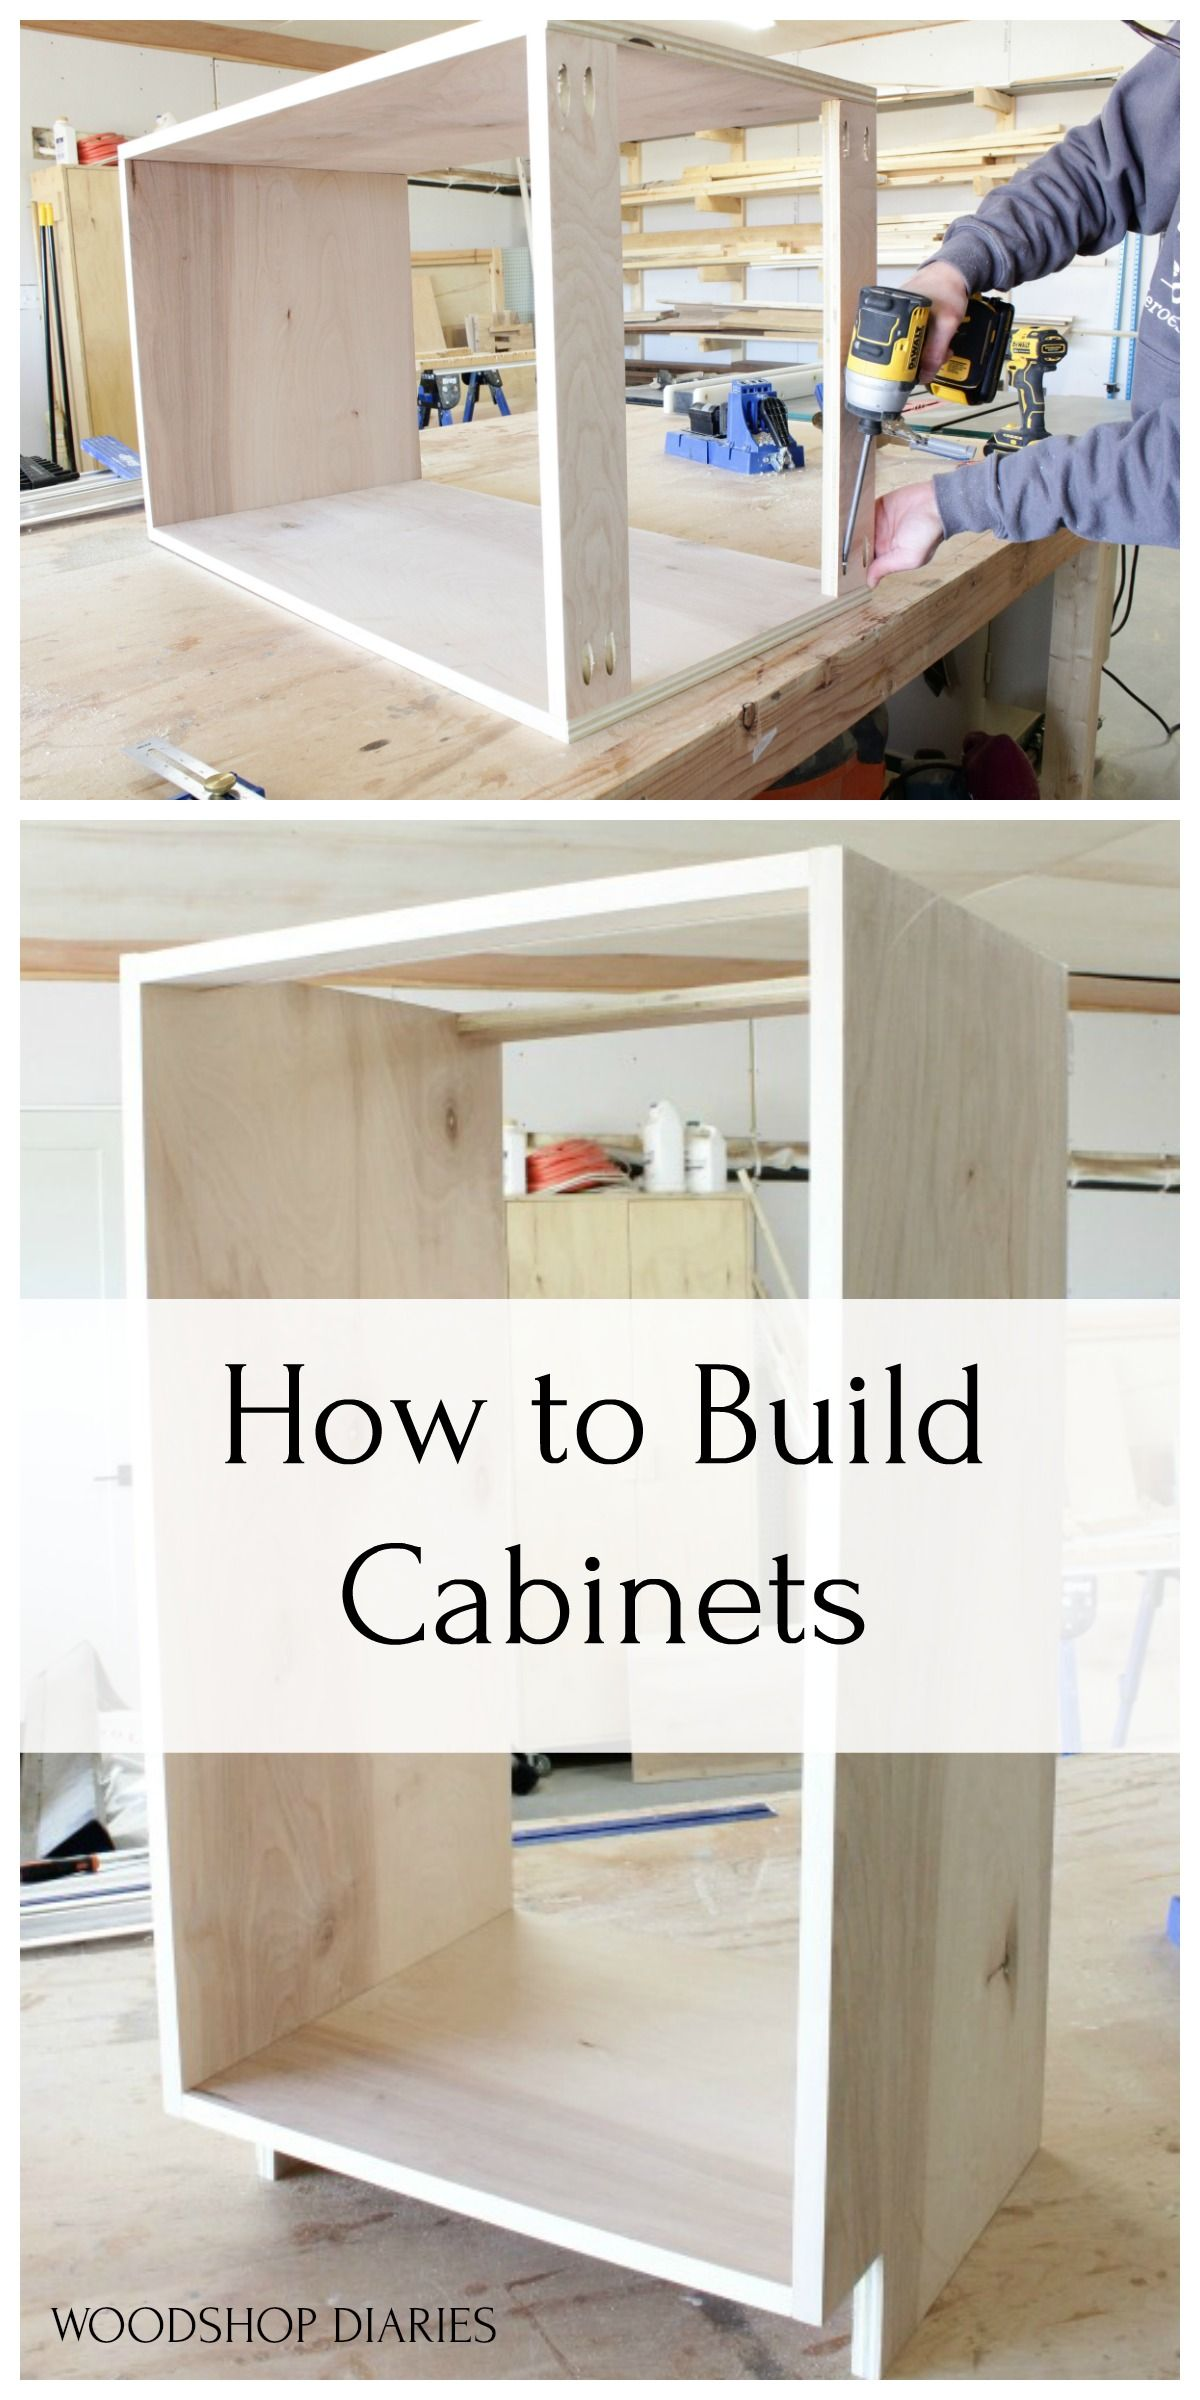 How To Build Your Own Cabinets : build, cabinets, Kitchen, Cabinets--{Made, Plywood!}, Cabinets,, Projects,, Renovation